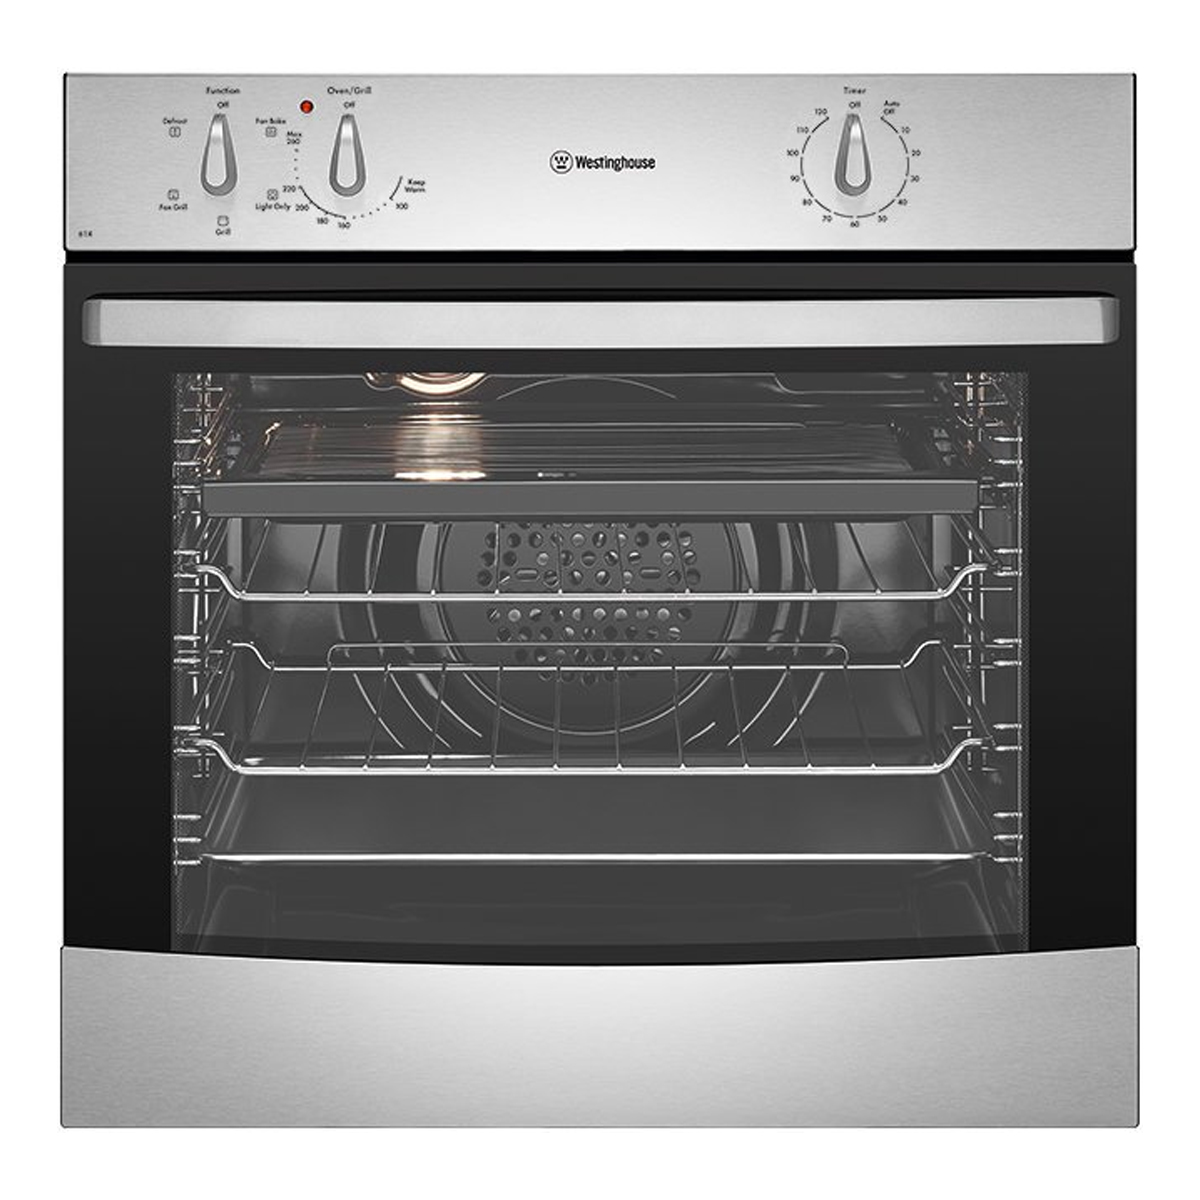 Westinghouse WVE614SA Electric Built-In Oven